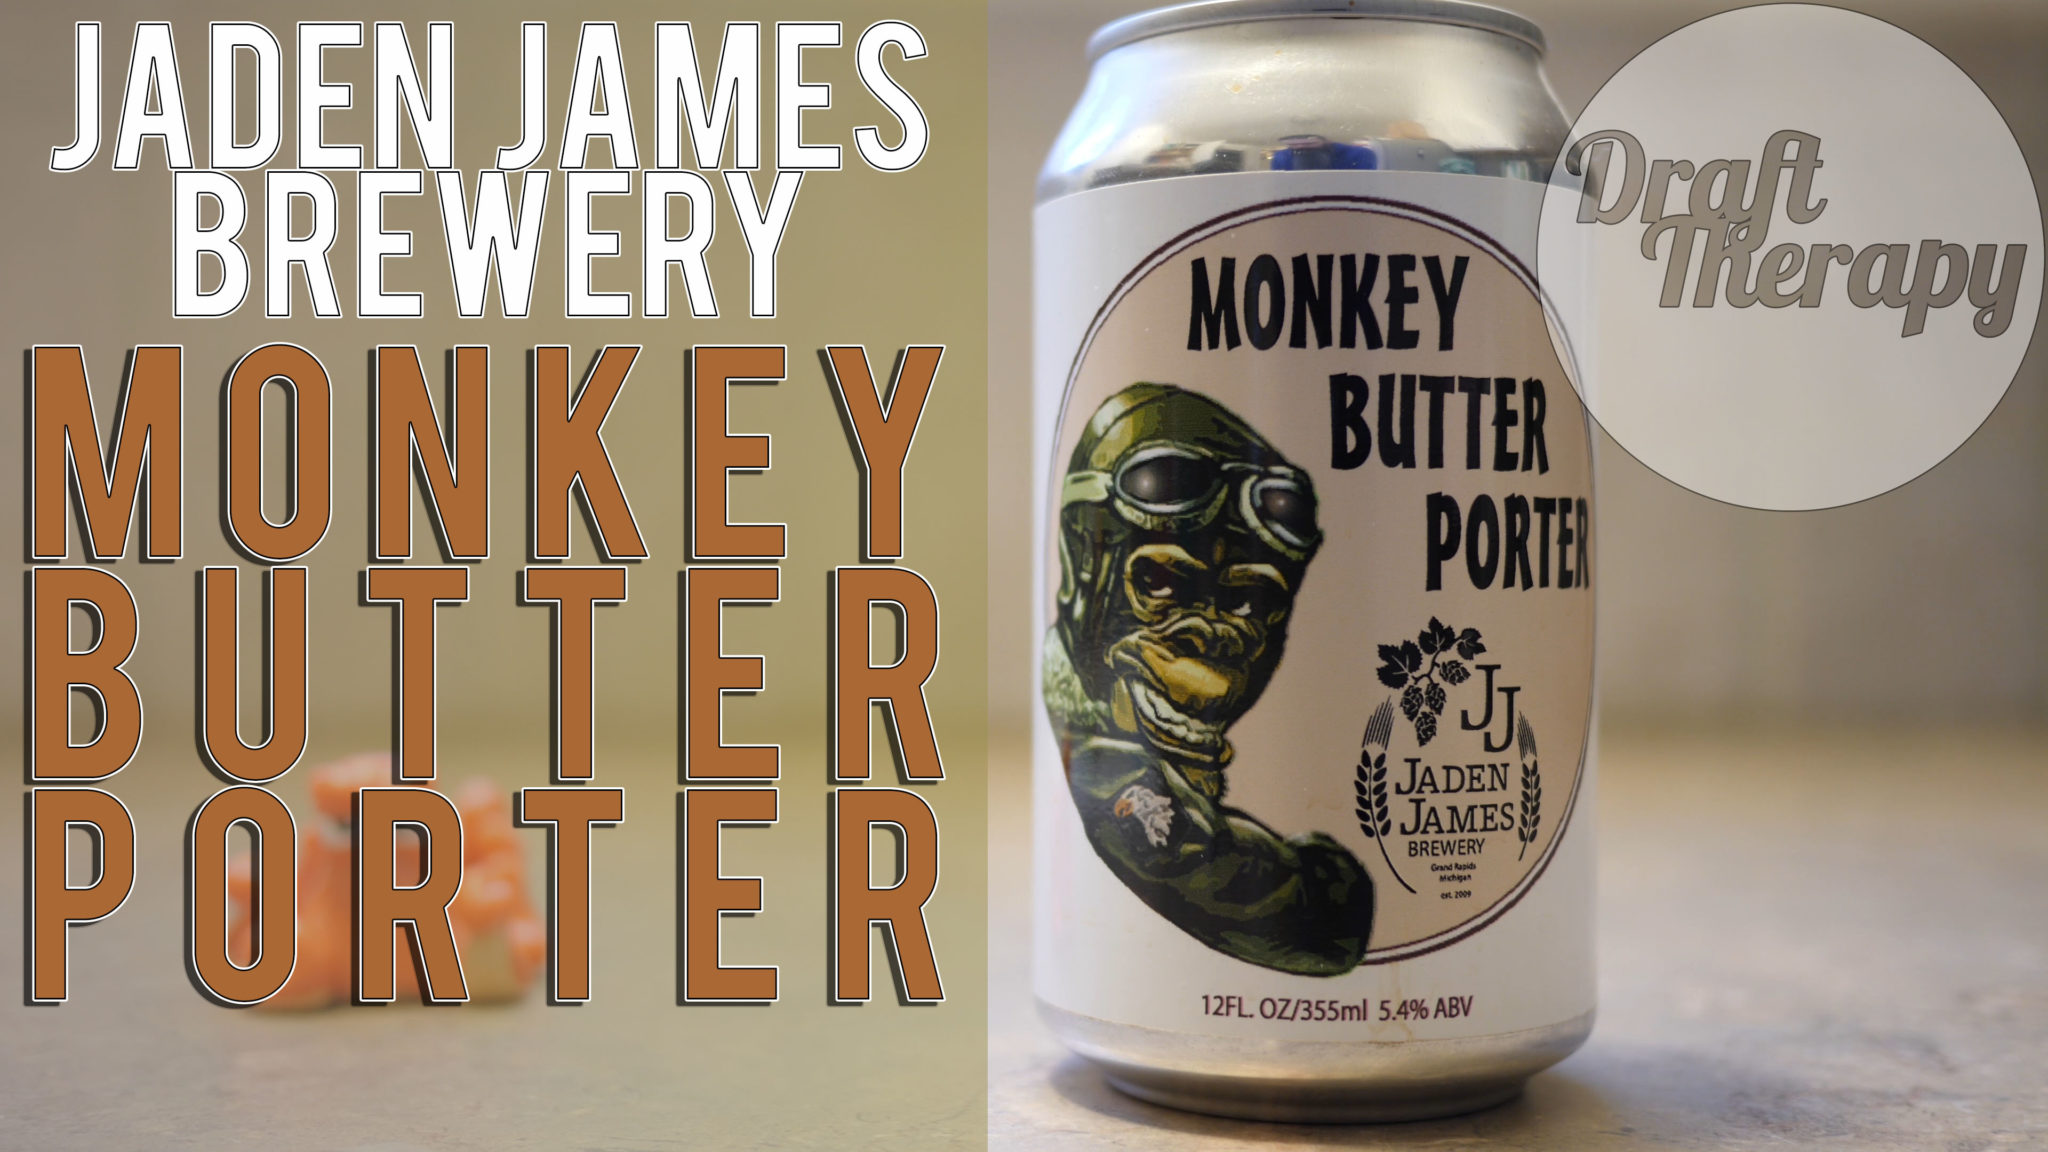 Jaden James Brewery – Monkey Butter Porter Review